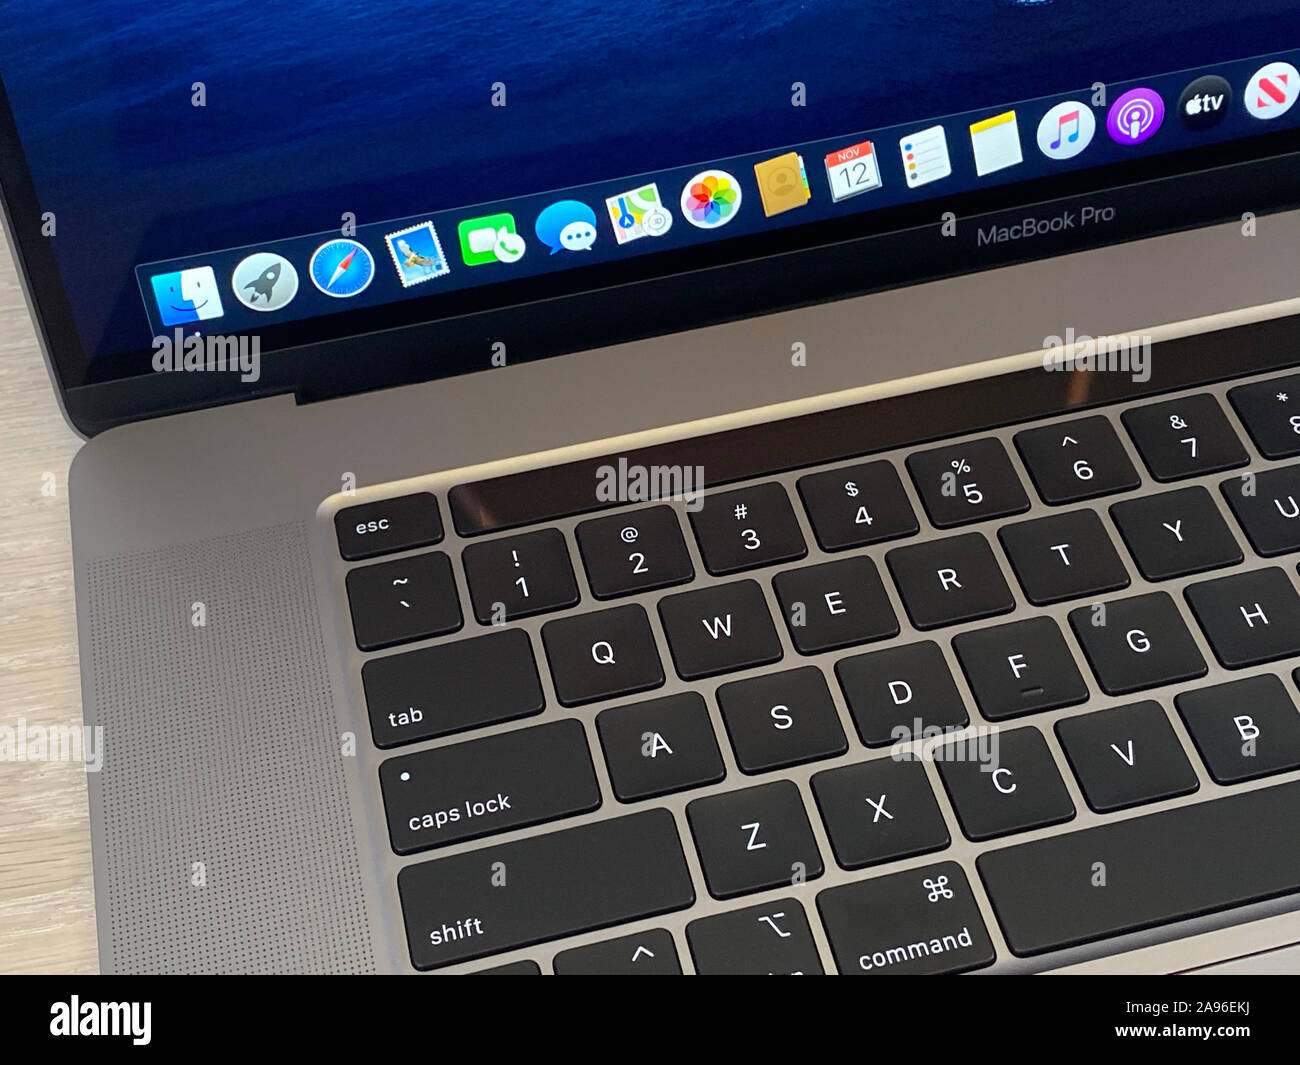 New York, USA. 12th Nov, 2019. The new MacBook Pro, recorded at an Apple presentation in New York, features a redesigned keyboard, a sophisticated sound system, and a 16-inch display. Credit: Christoph Dernbach/dpa/Alamy Live News Stock Photo